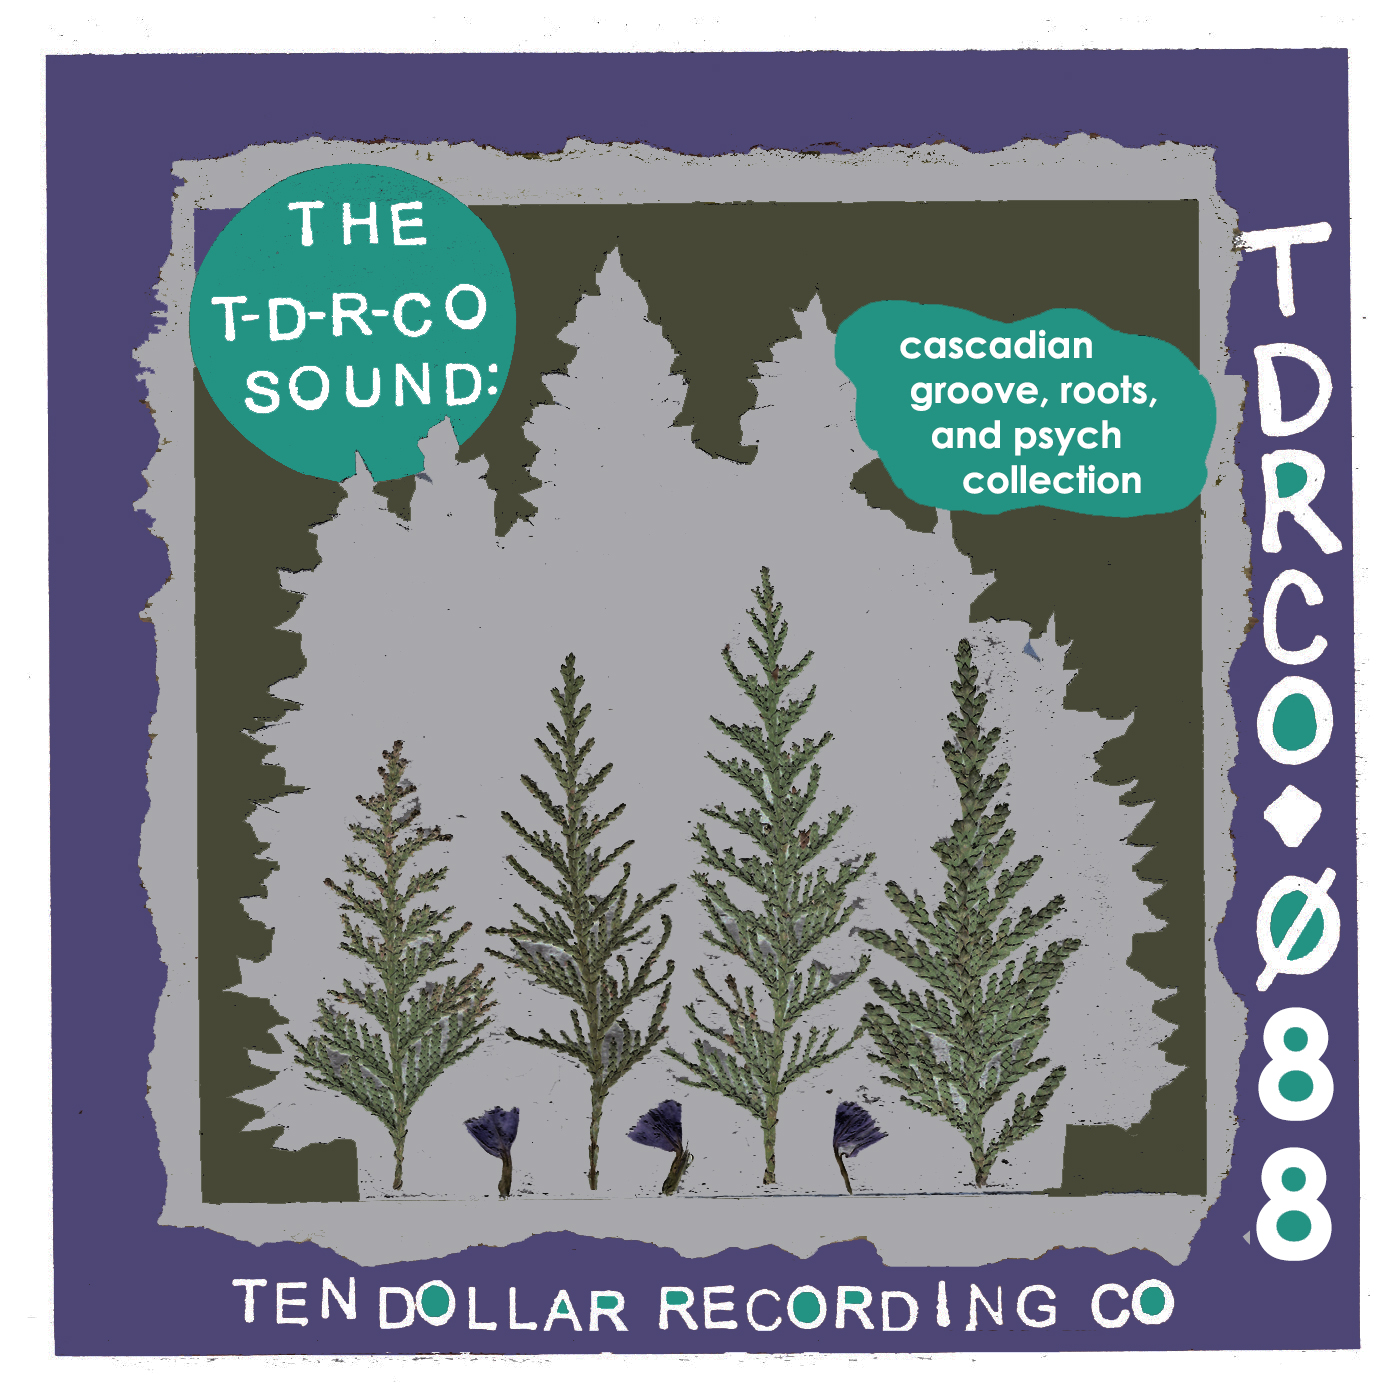 The T-D-R-Co Sound: Cascadian Groove, Roots, and Psych Collection